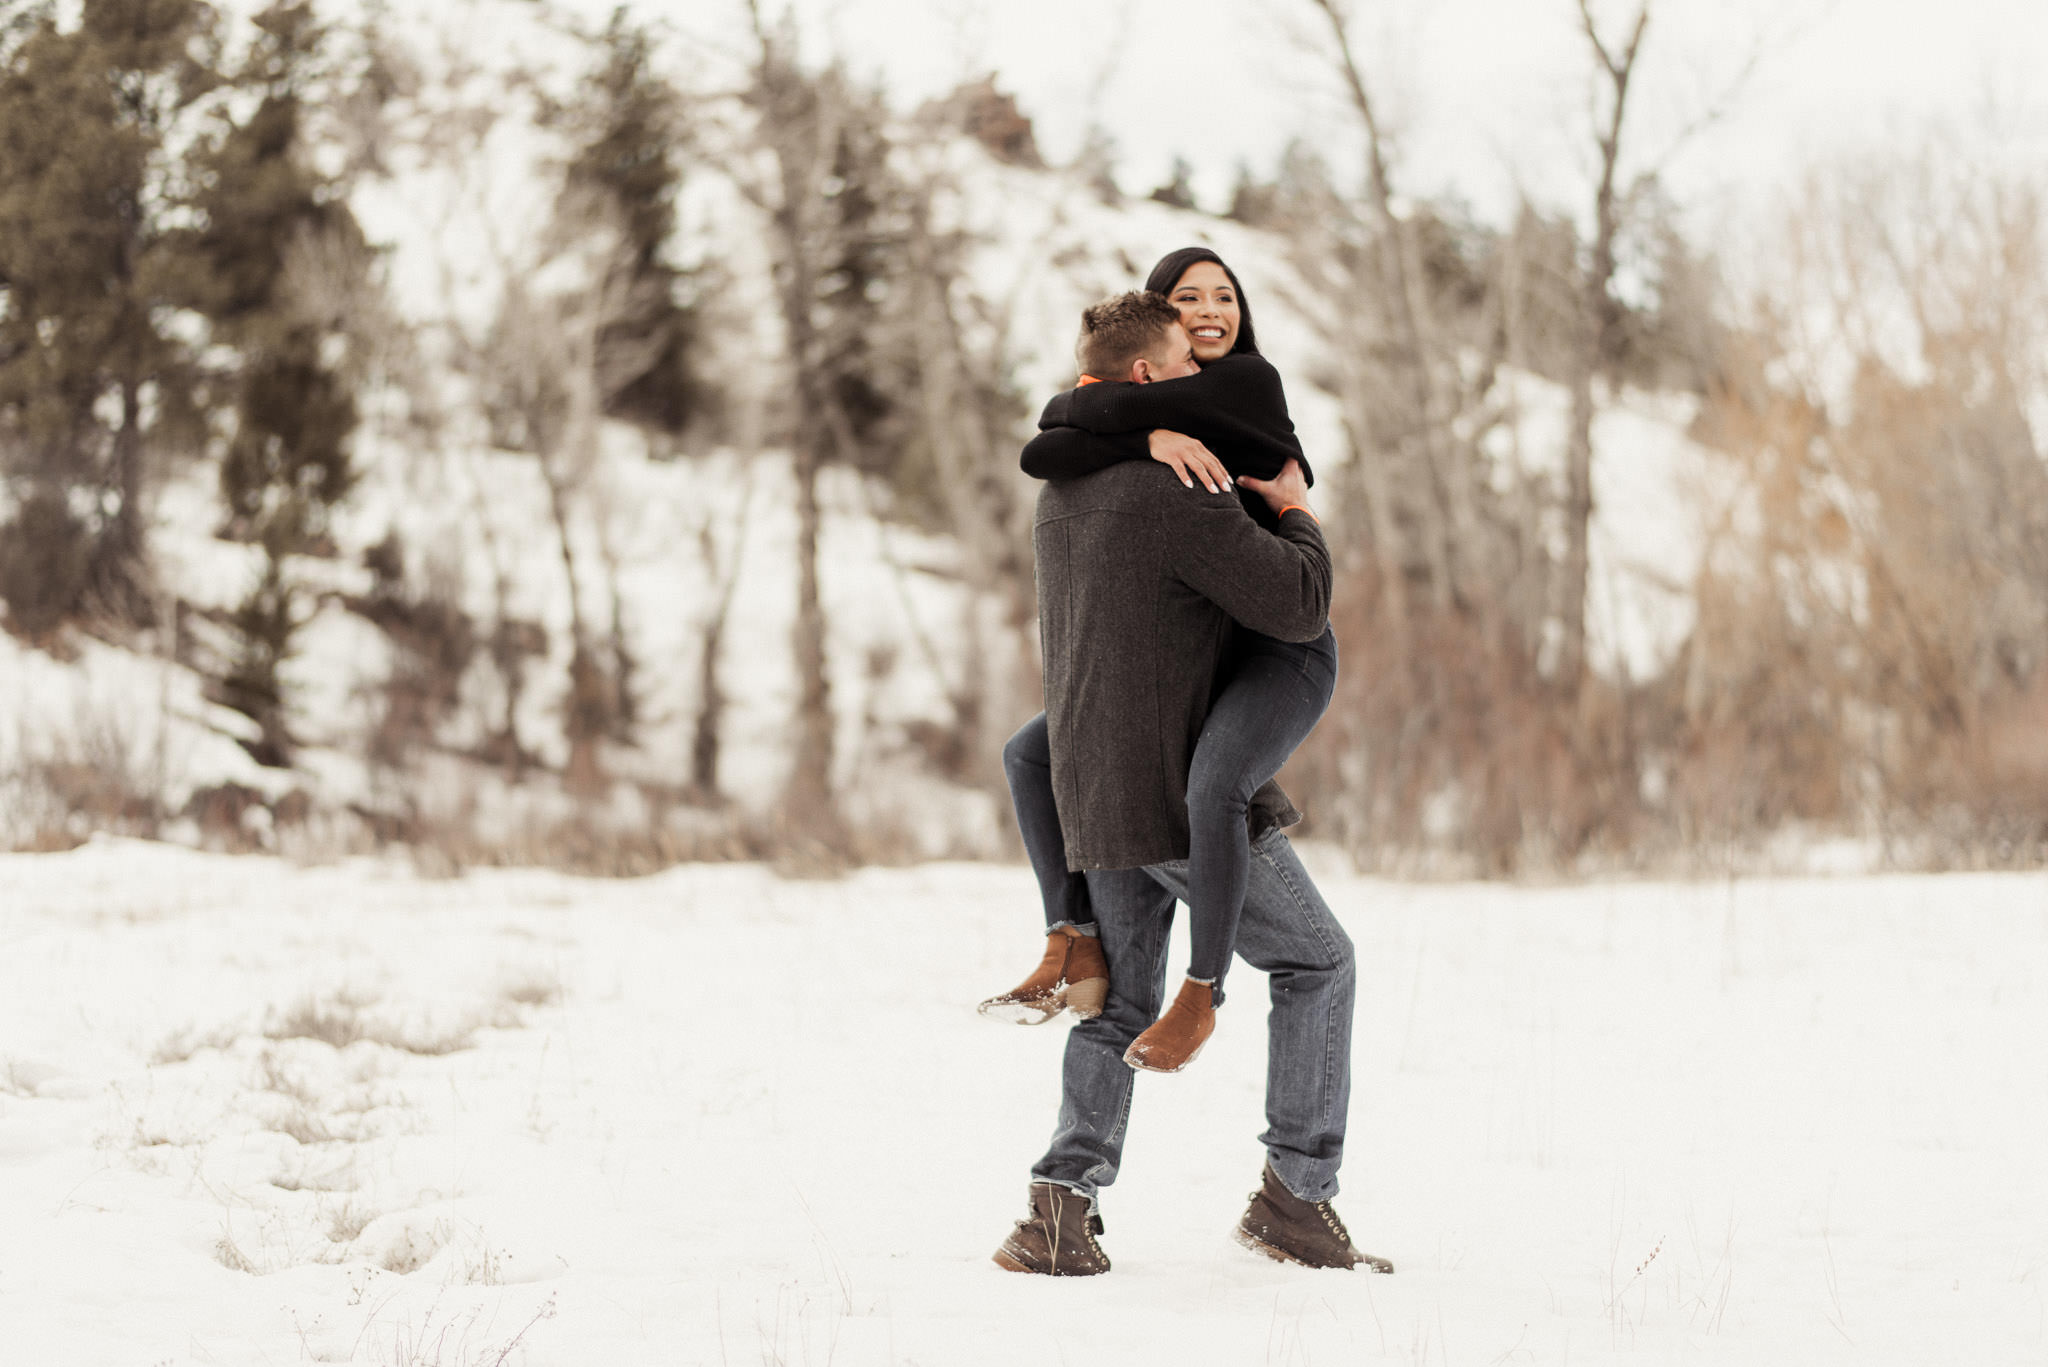 sandra-ryan-colorado-winter-snow-engagement-couples-valentines-red-houston-photographer-sm-34.jpg